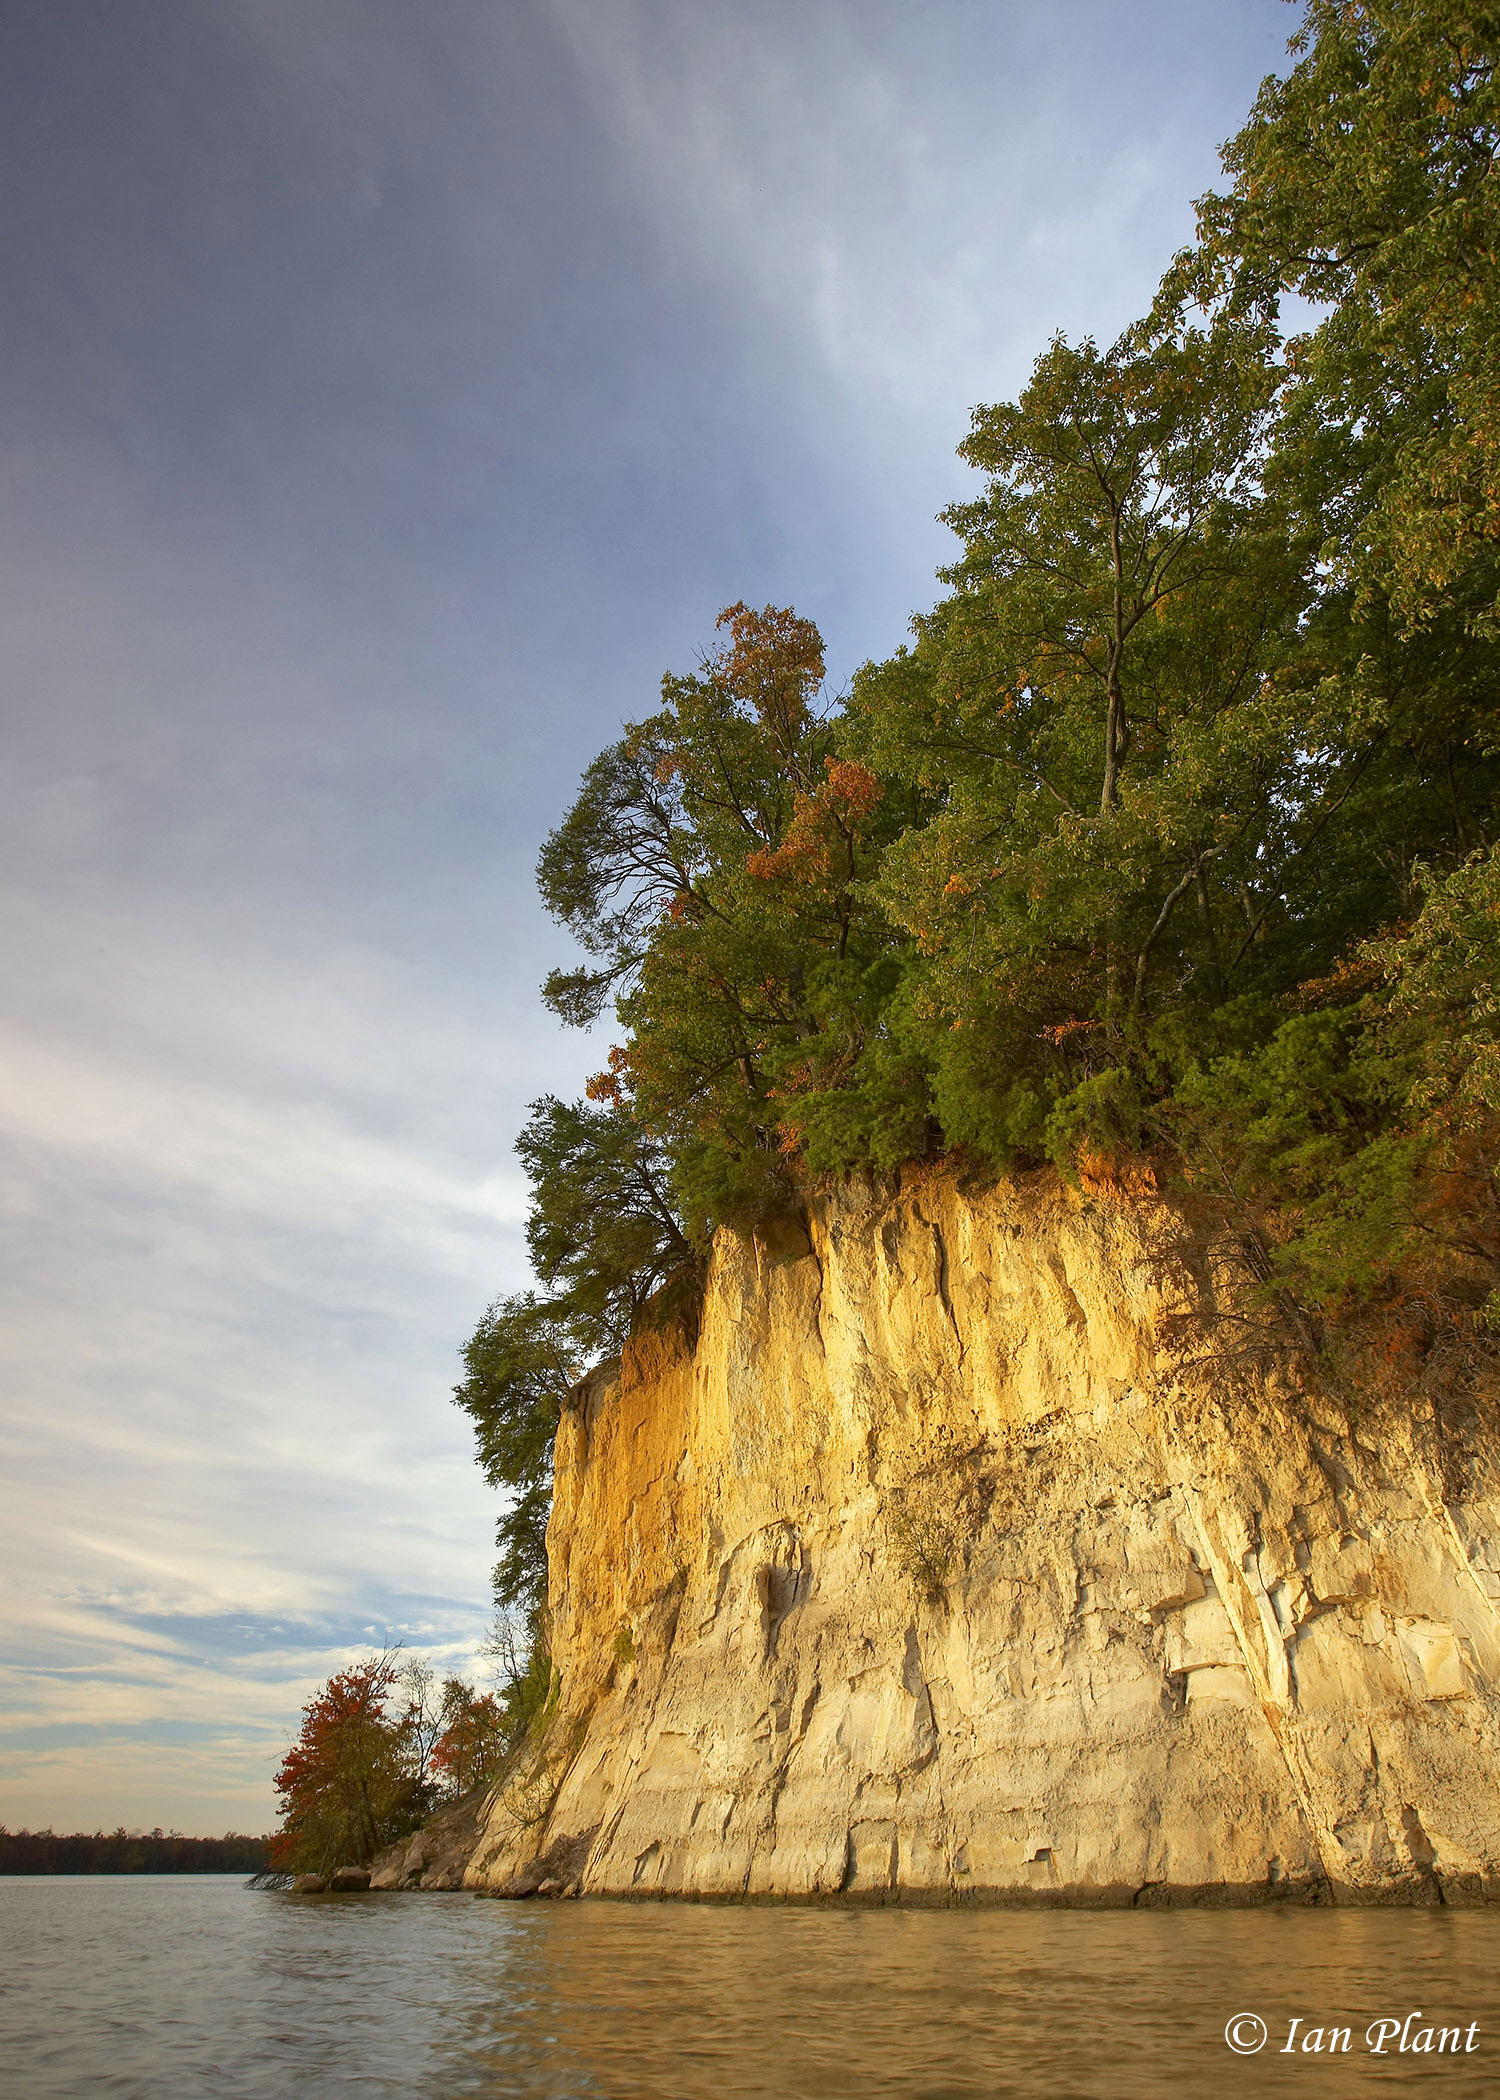 Fones Cliffs Development Threatens Rappahannock River